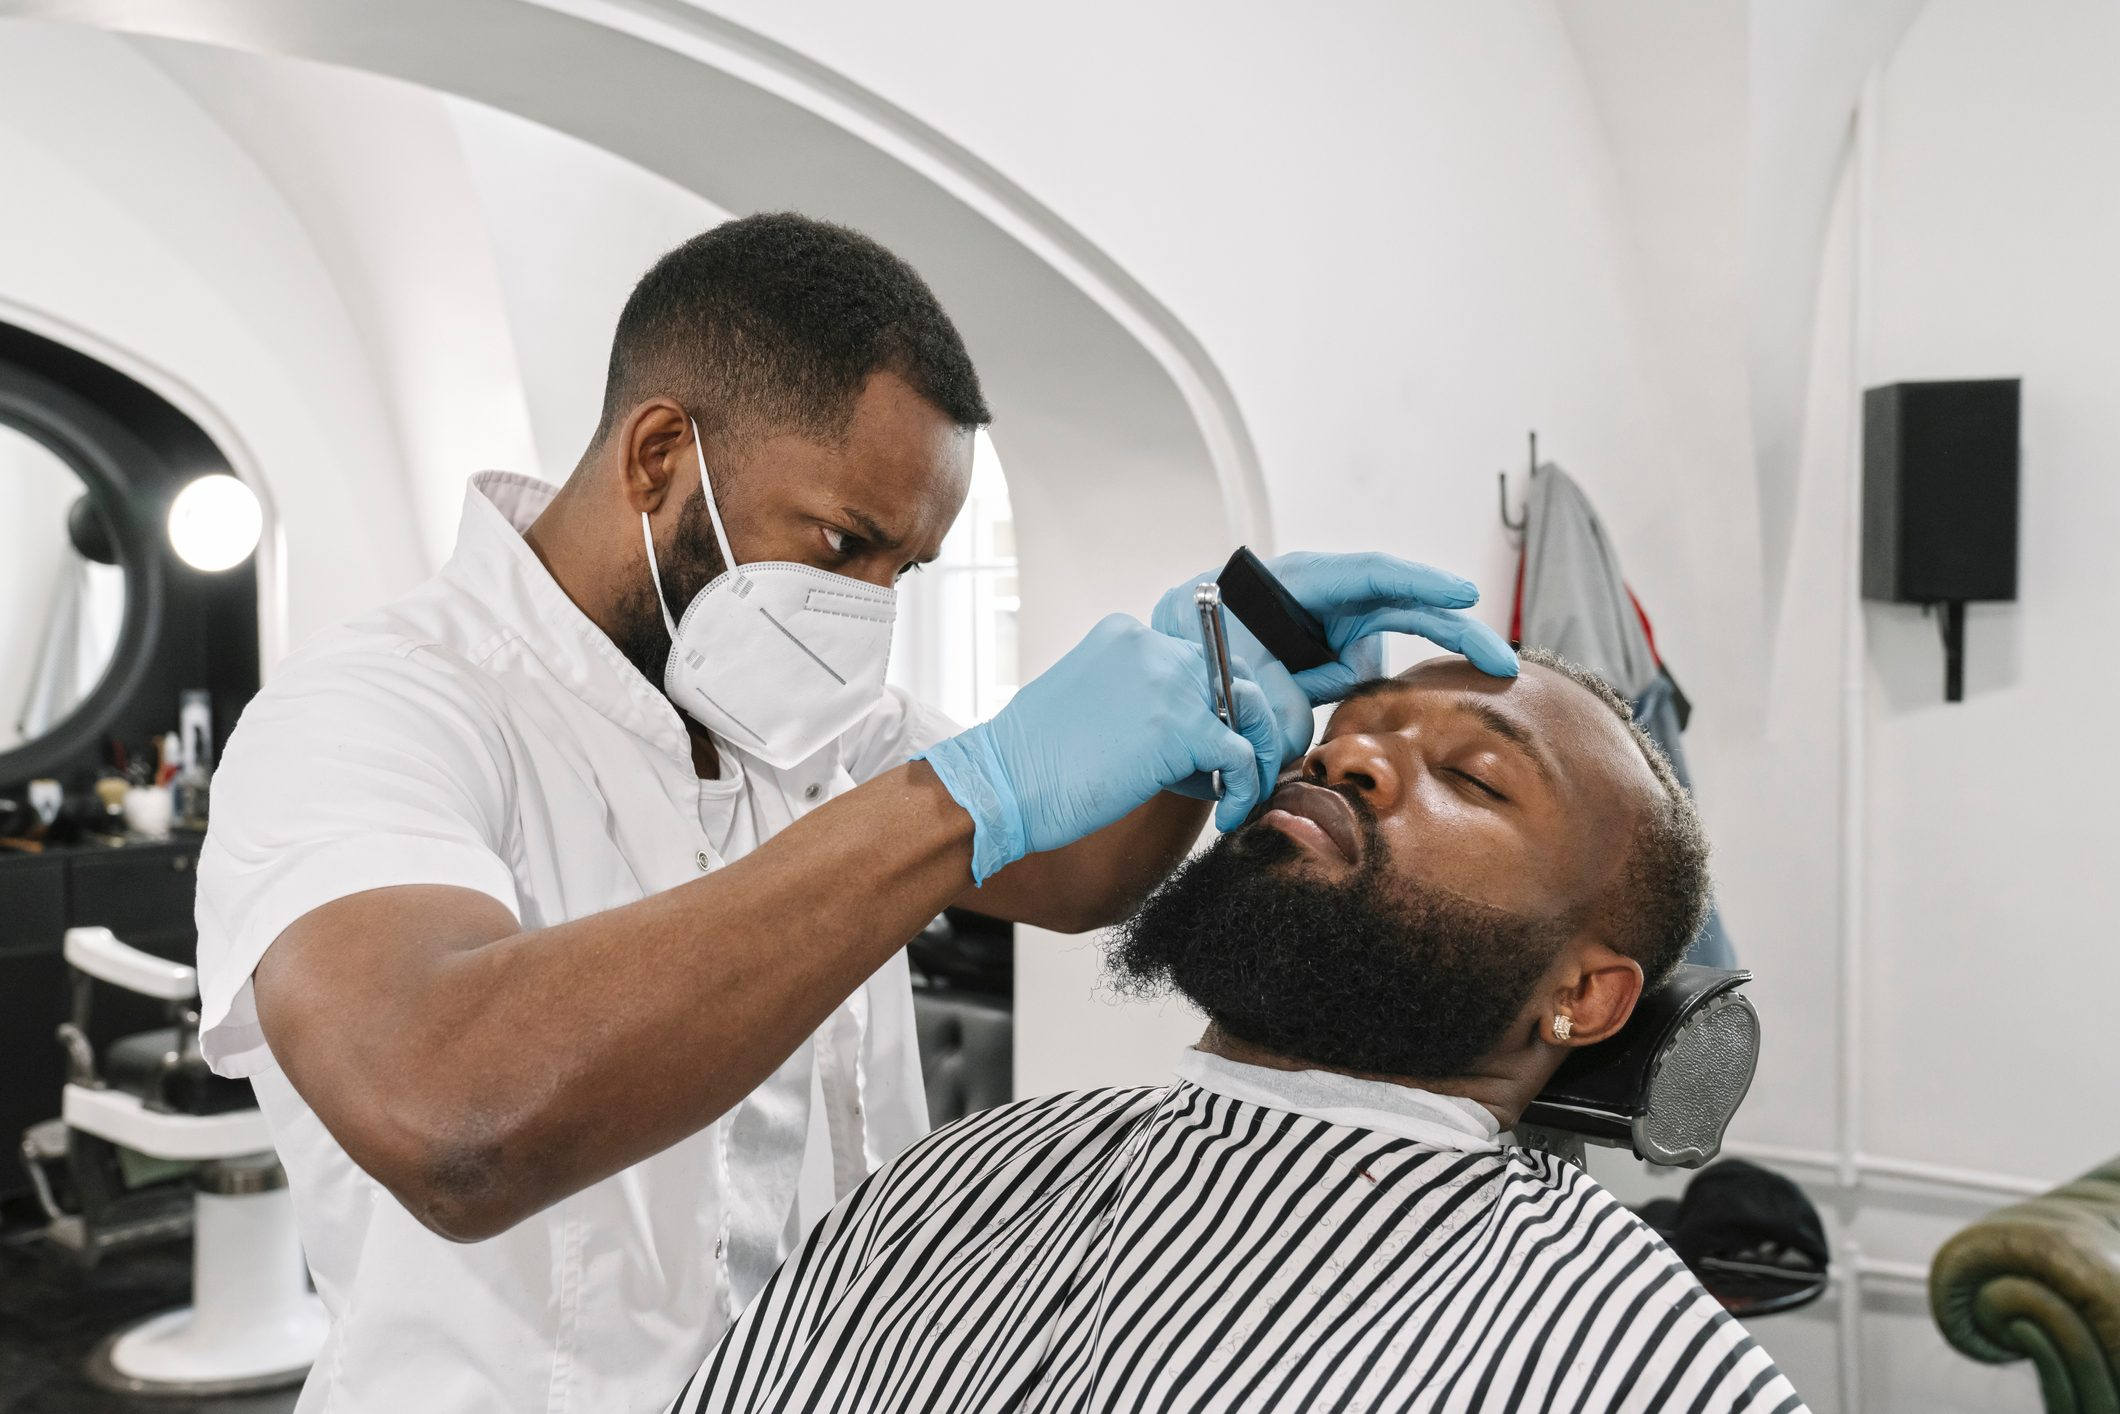 Man with full beard getting a shave, barber wearing surgical mask and gloves